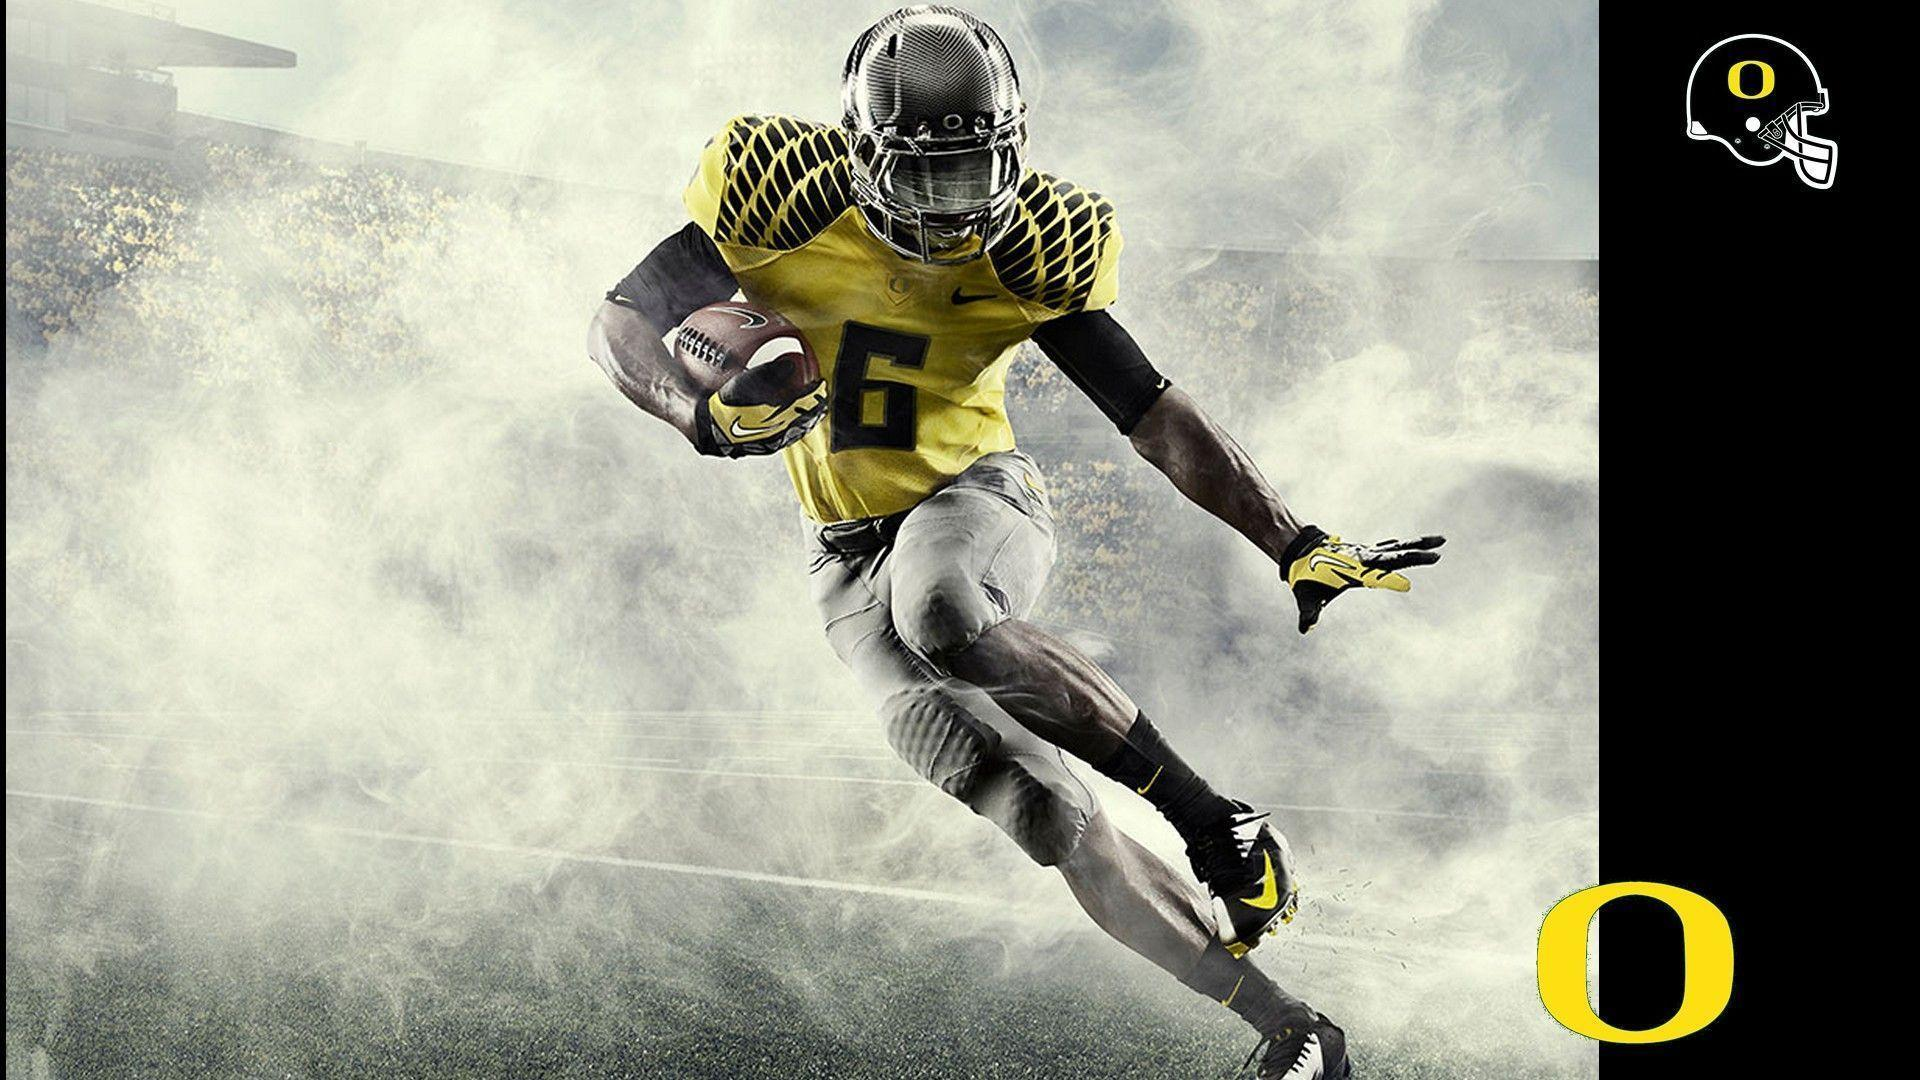 Nike Nfl Football Field Wallpapers: Nike Football Wallpapers